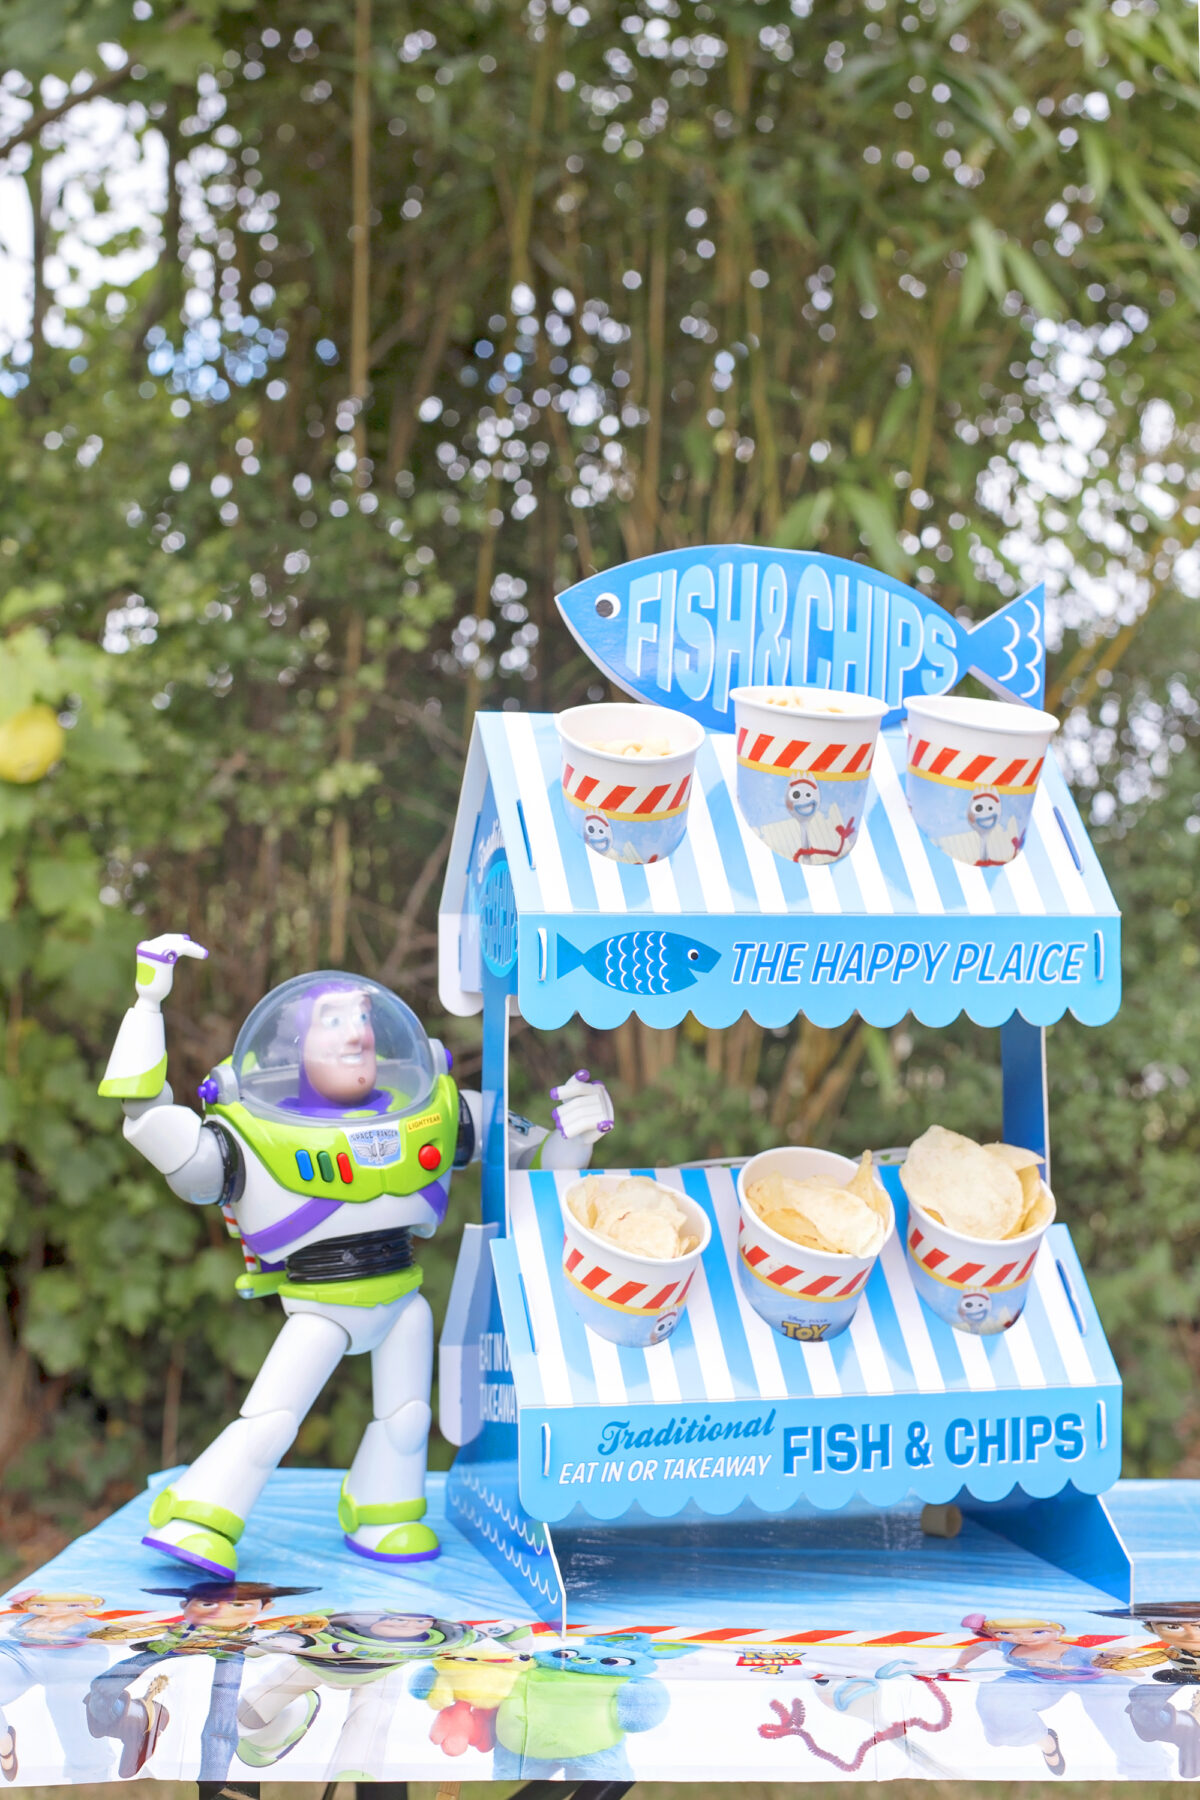 Image shows a party table outdoors with Disney's Buzz Lightyear toy stood on top of it, next to a novelty fish and chip stand made from cardboard.